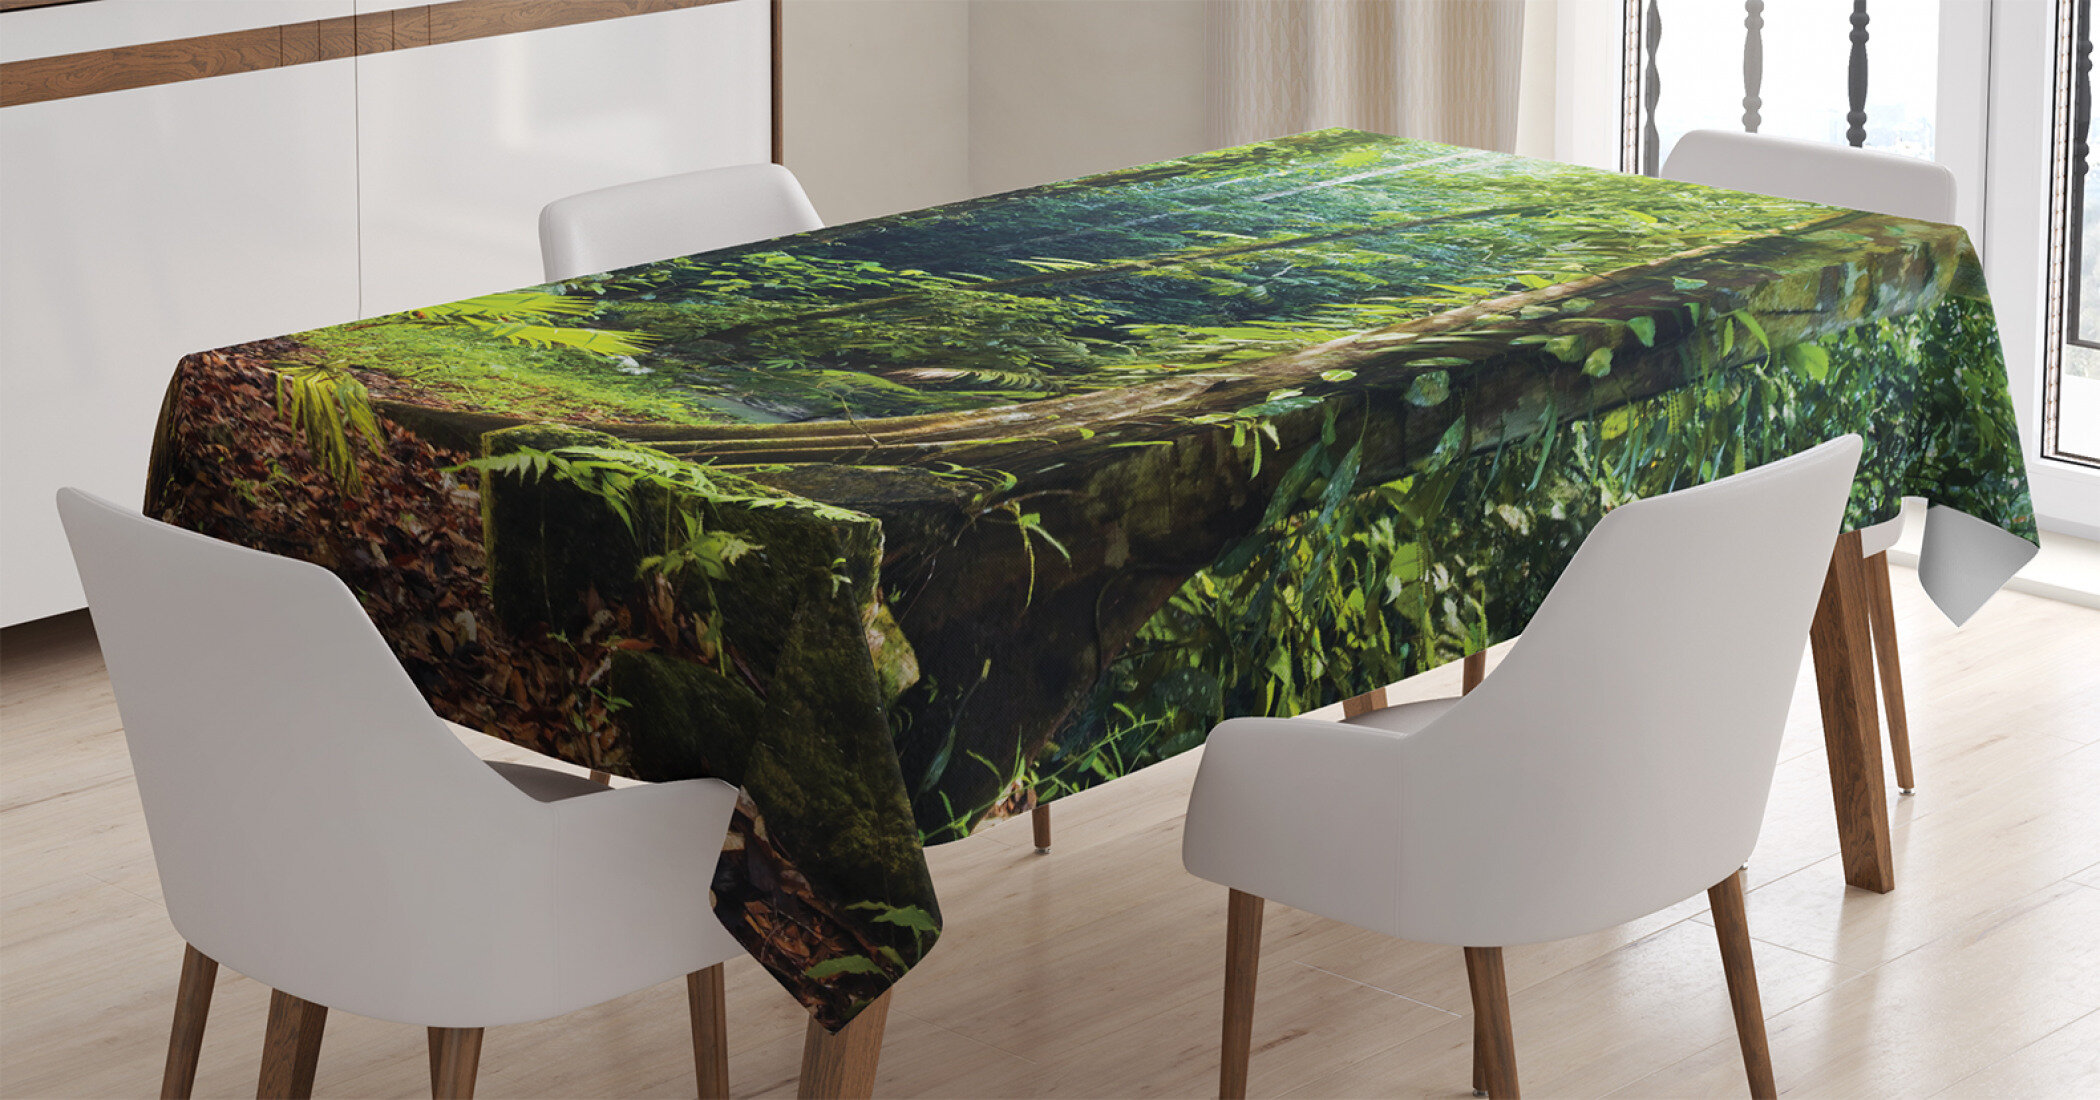 East Urban Home Ambesonne Rainforest Tablecloth Morning Sunbeam Through Wild Forest Ivy On Trees Tranquility In Nature Eco Rectangular Table Cover For Dining Room Kitchen Decor 60 X 84 Green Brown